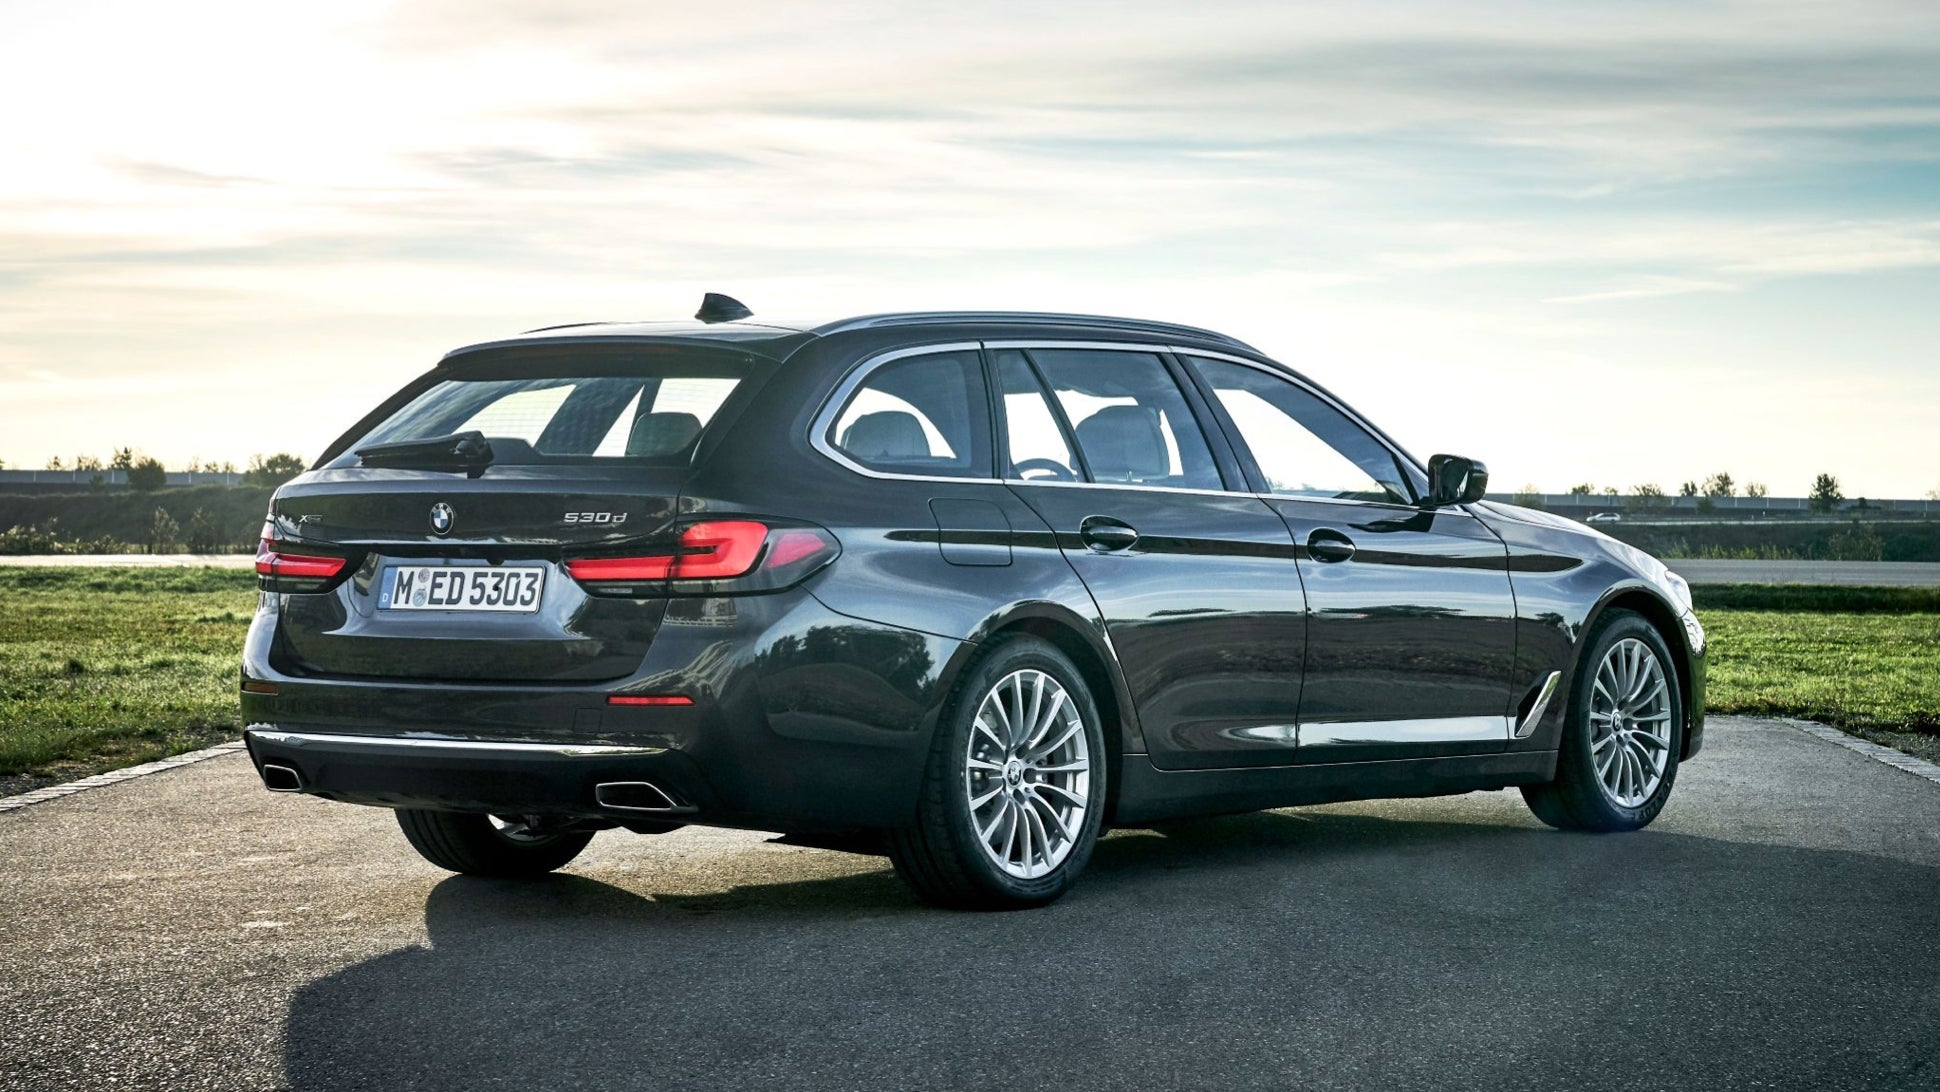 The Best Looking New Bmw Is The 2021 5 Series Touring The Drive